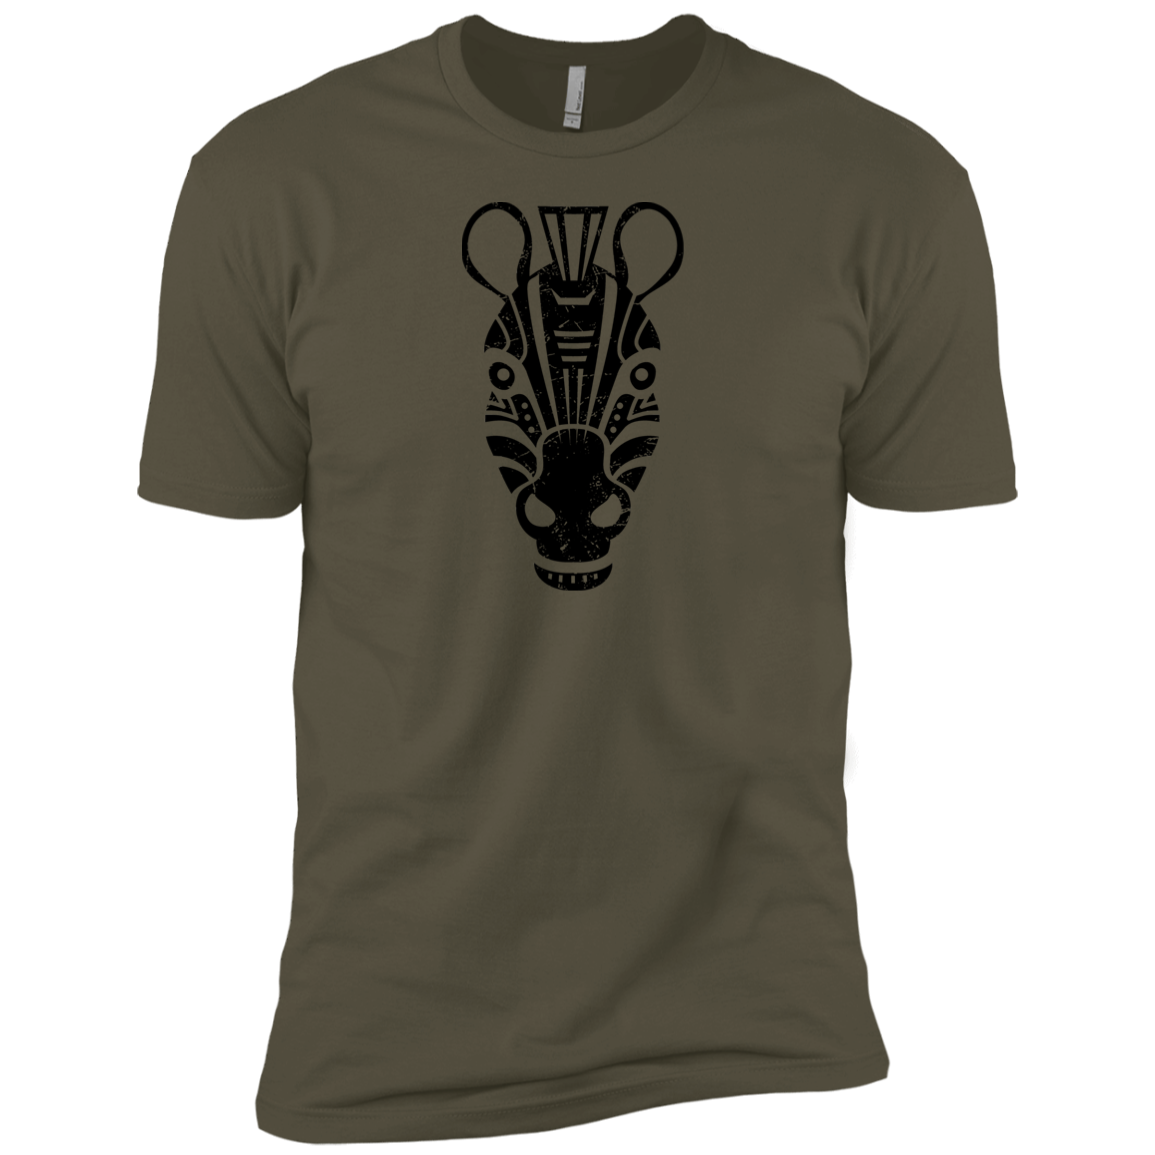 Black Distressed Emblem (Zebra/Stripes) - Dark Corps